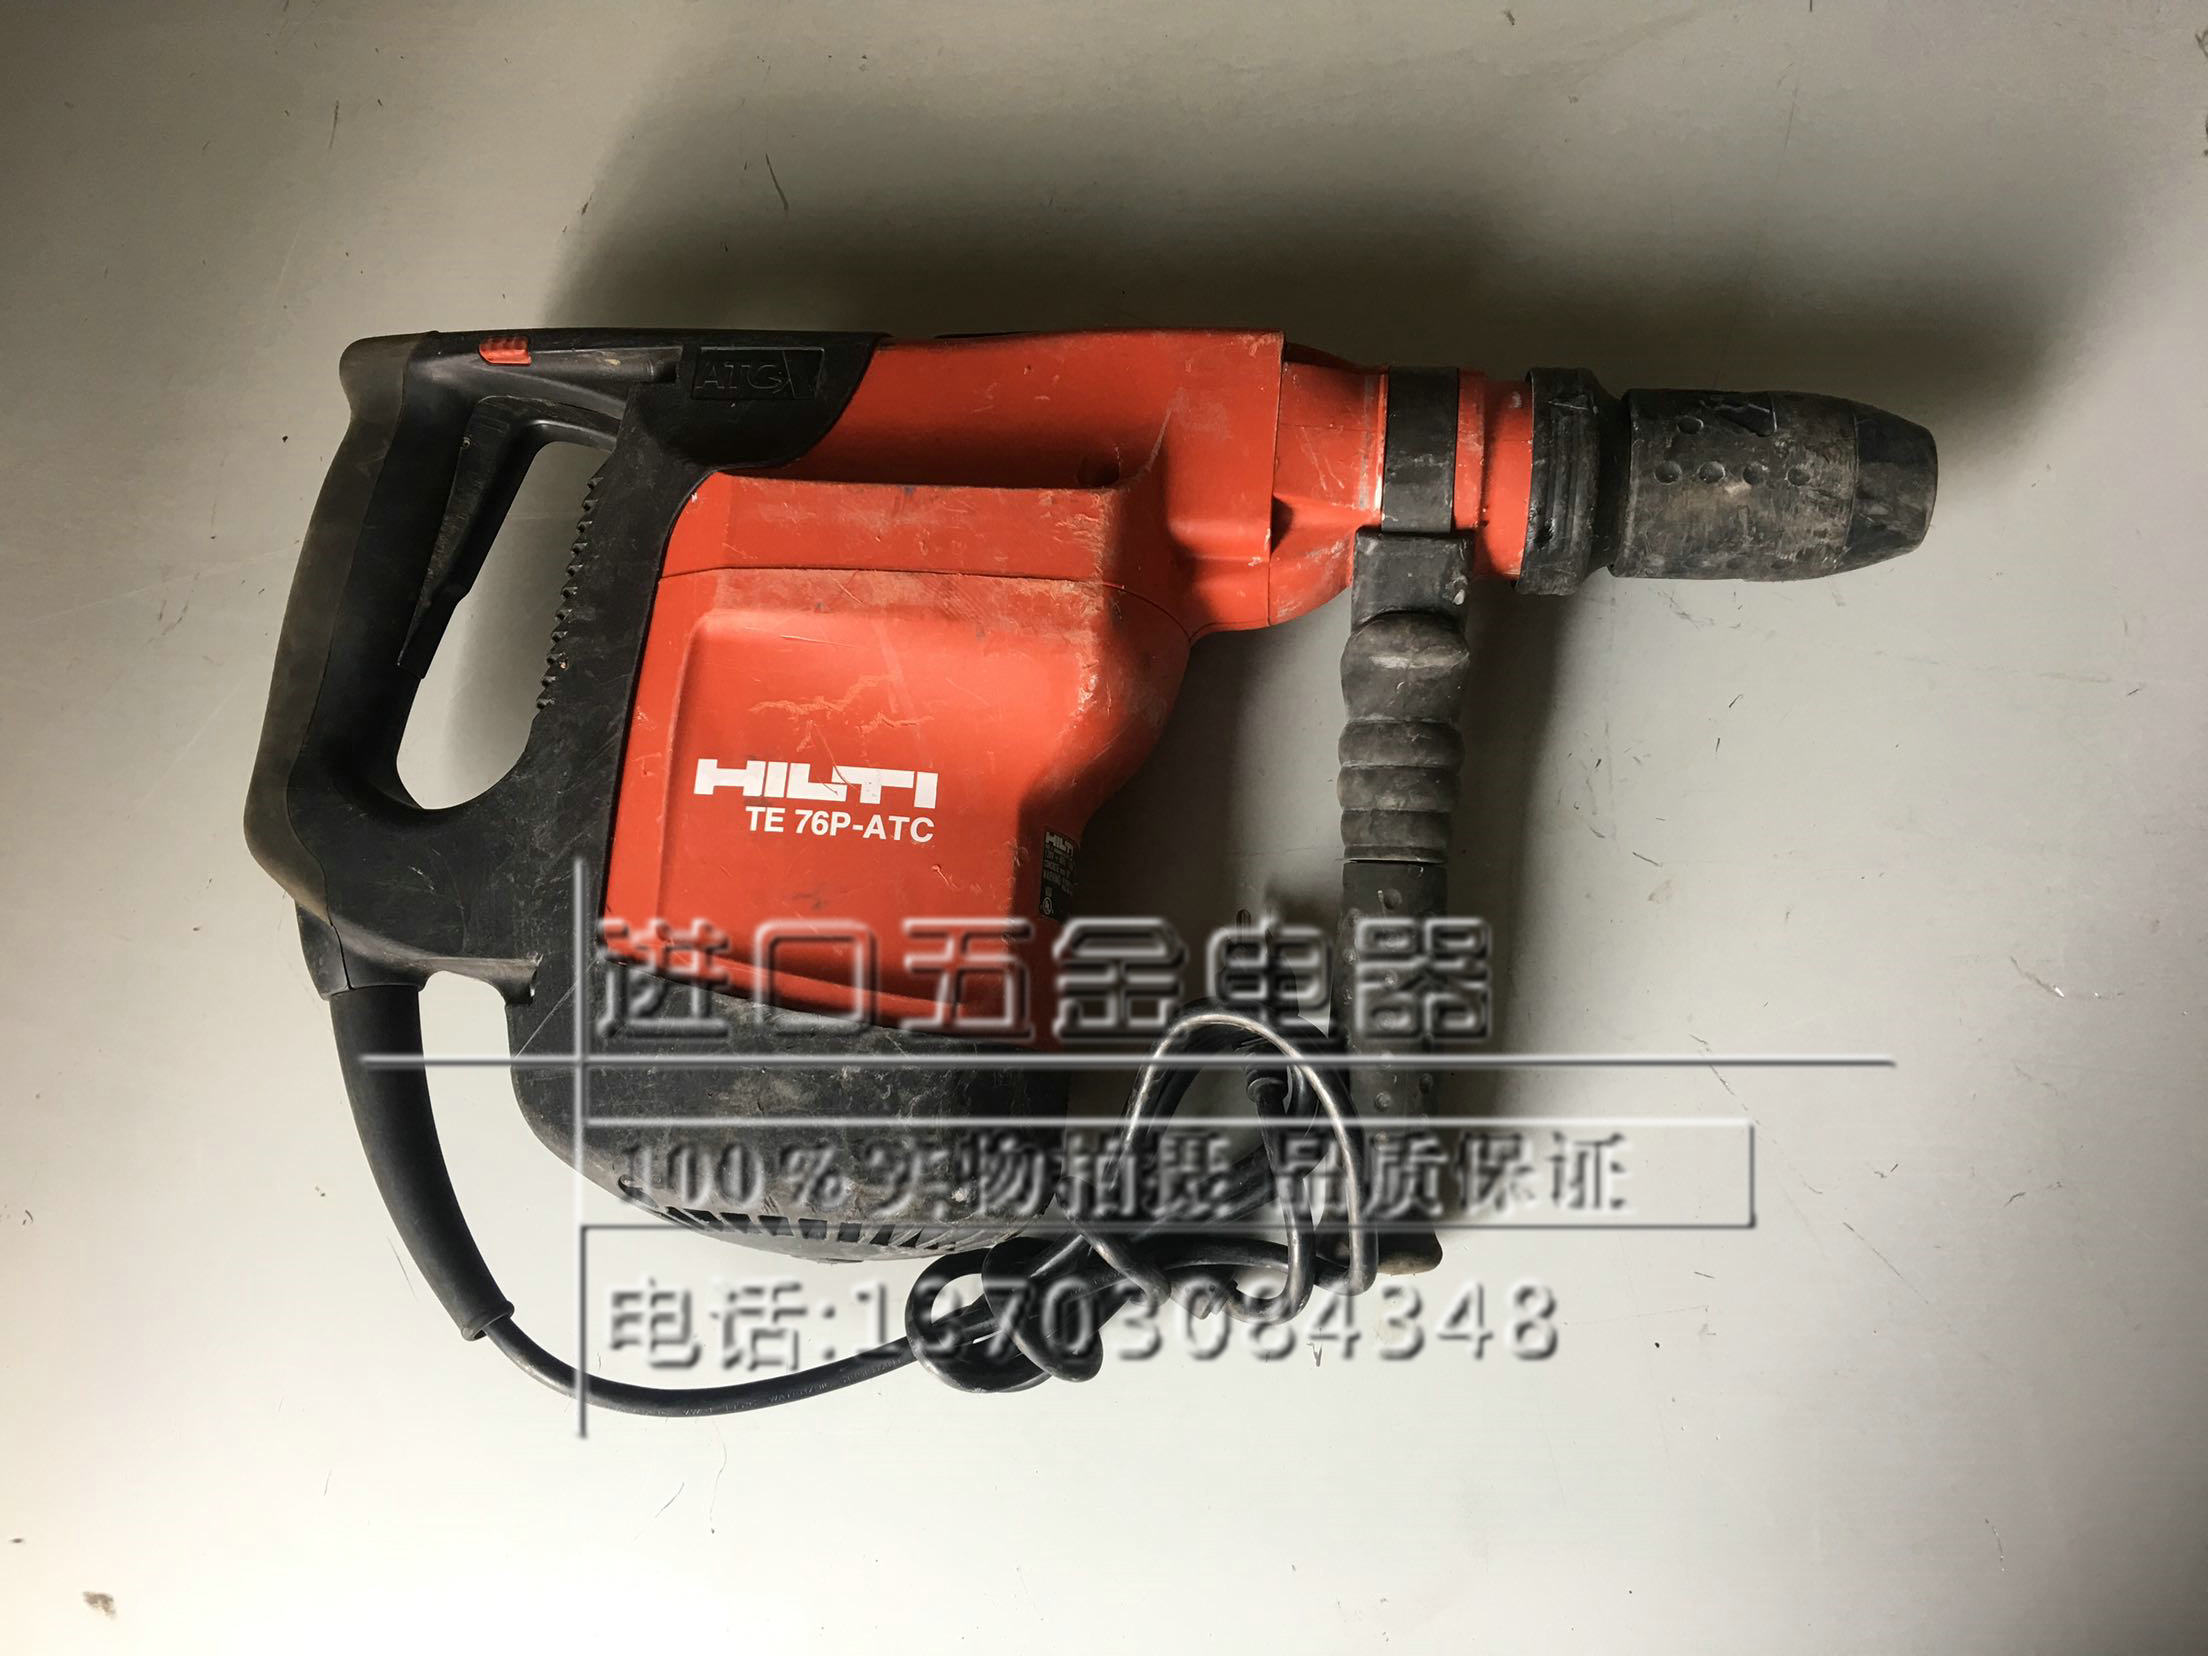 Used Hilti TE 76 multi-function electric hammer / electric pick / electric drill three-function electric drill enlarge